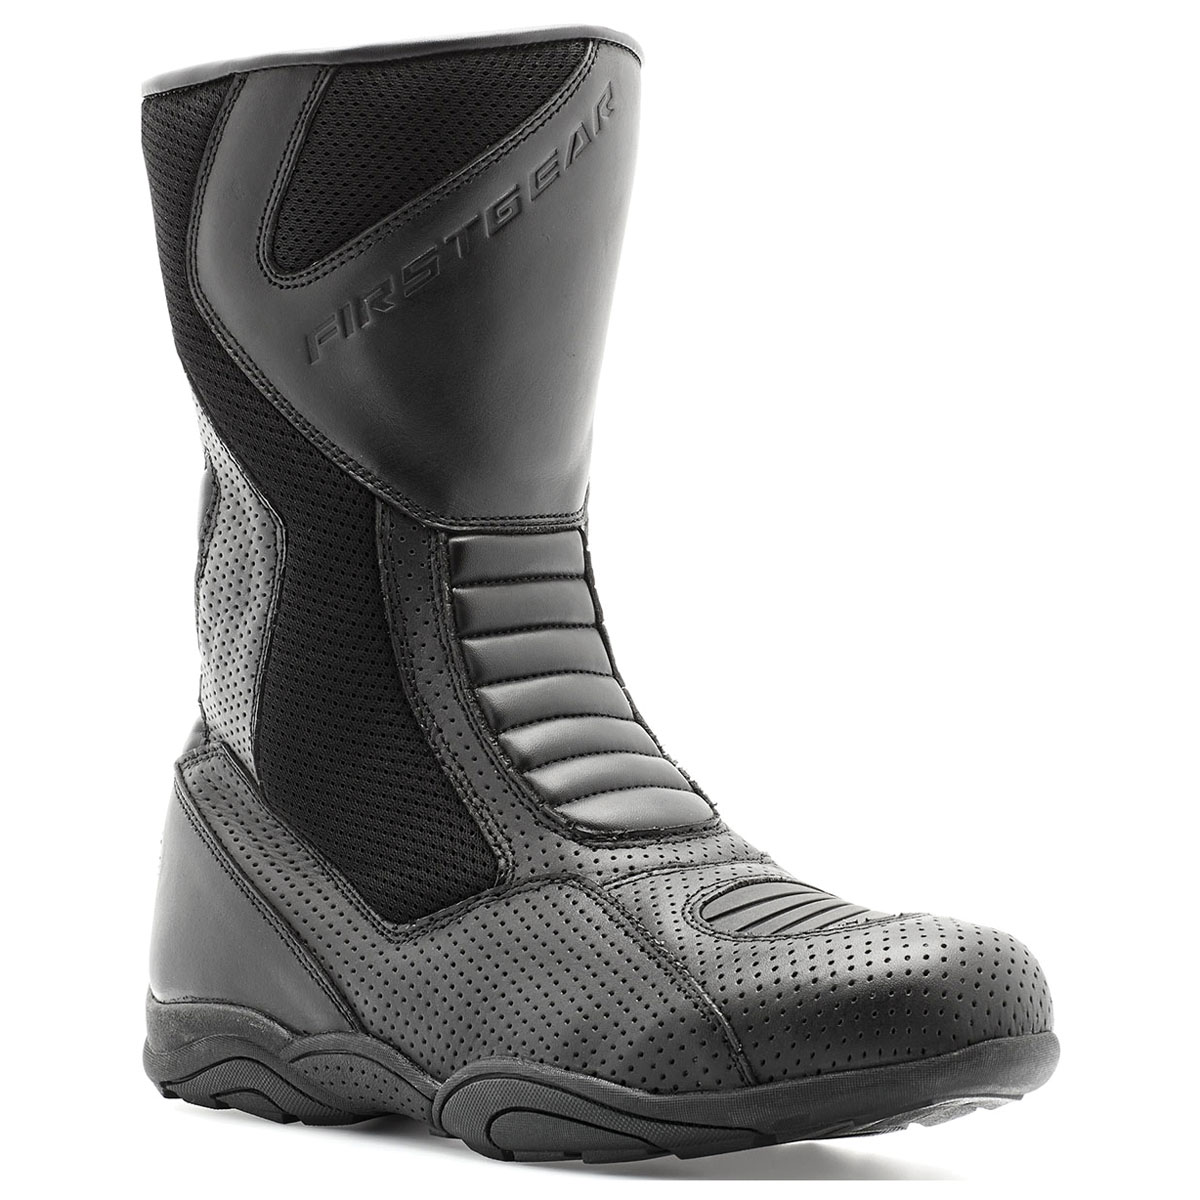 Firstgear Men's Strato Air Perforated Leather Boots